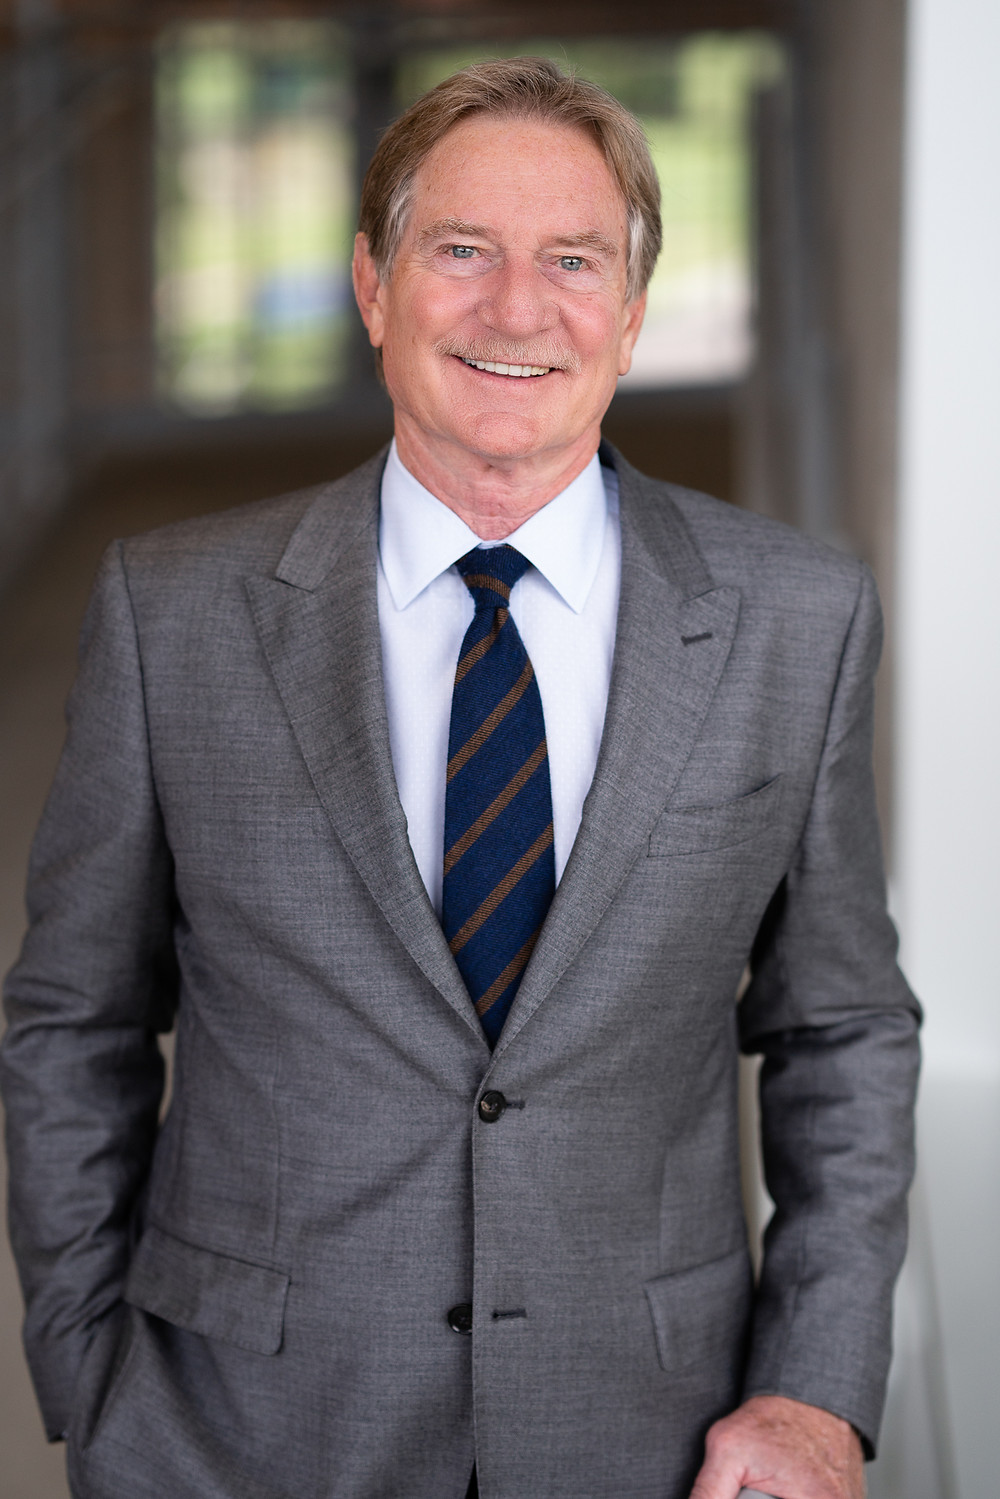 An older man in a business suit and tie smiles for his commercial headshot portrait